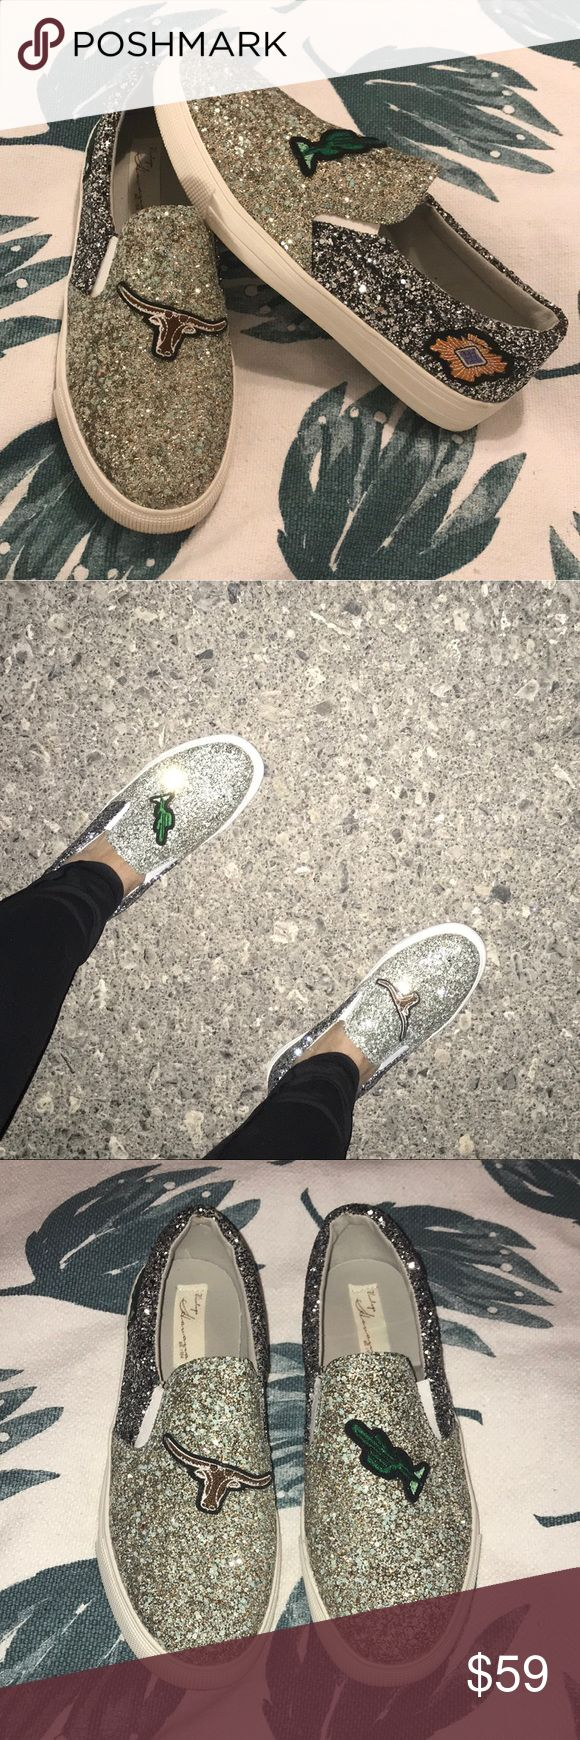 """🌵Vintage Havana Patched Glittery Slip-On Sneaker ✨ worn once✨ these shoes are magical! I tried to show how amazing they are using pics with a flash and no flash. Only defect is the left shoe insole is lifting, please see last pic, but this is not an issue once you put them on.   - Sizing: True to size. These do not come in half sizes! - Round toe - Glitter finish - Patched - Gore insets - Slip-on - Lightly padded footbed - Rubber midsole - Approx. 1"""" platform - Grip sole - Imported Vintage…"""